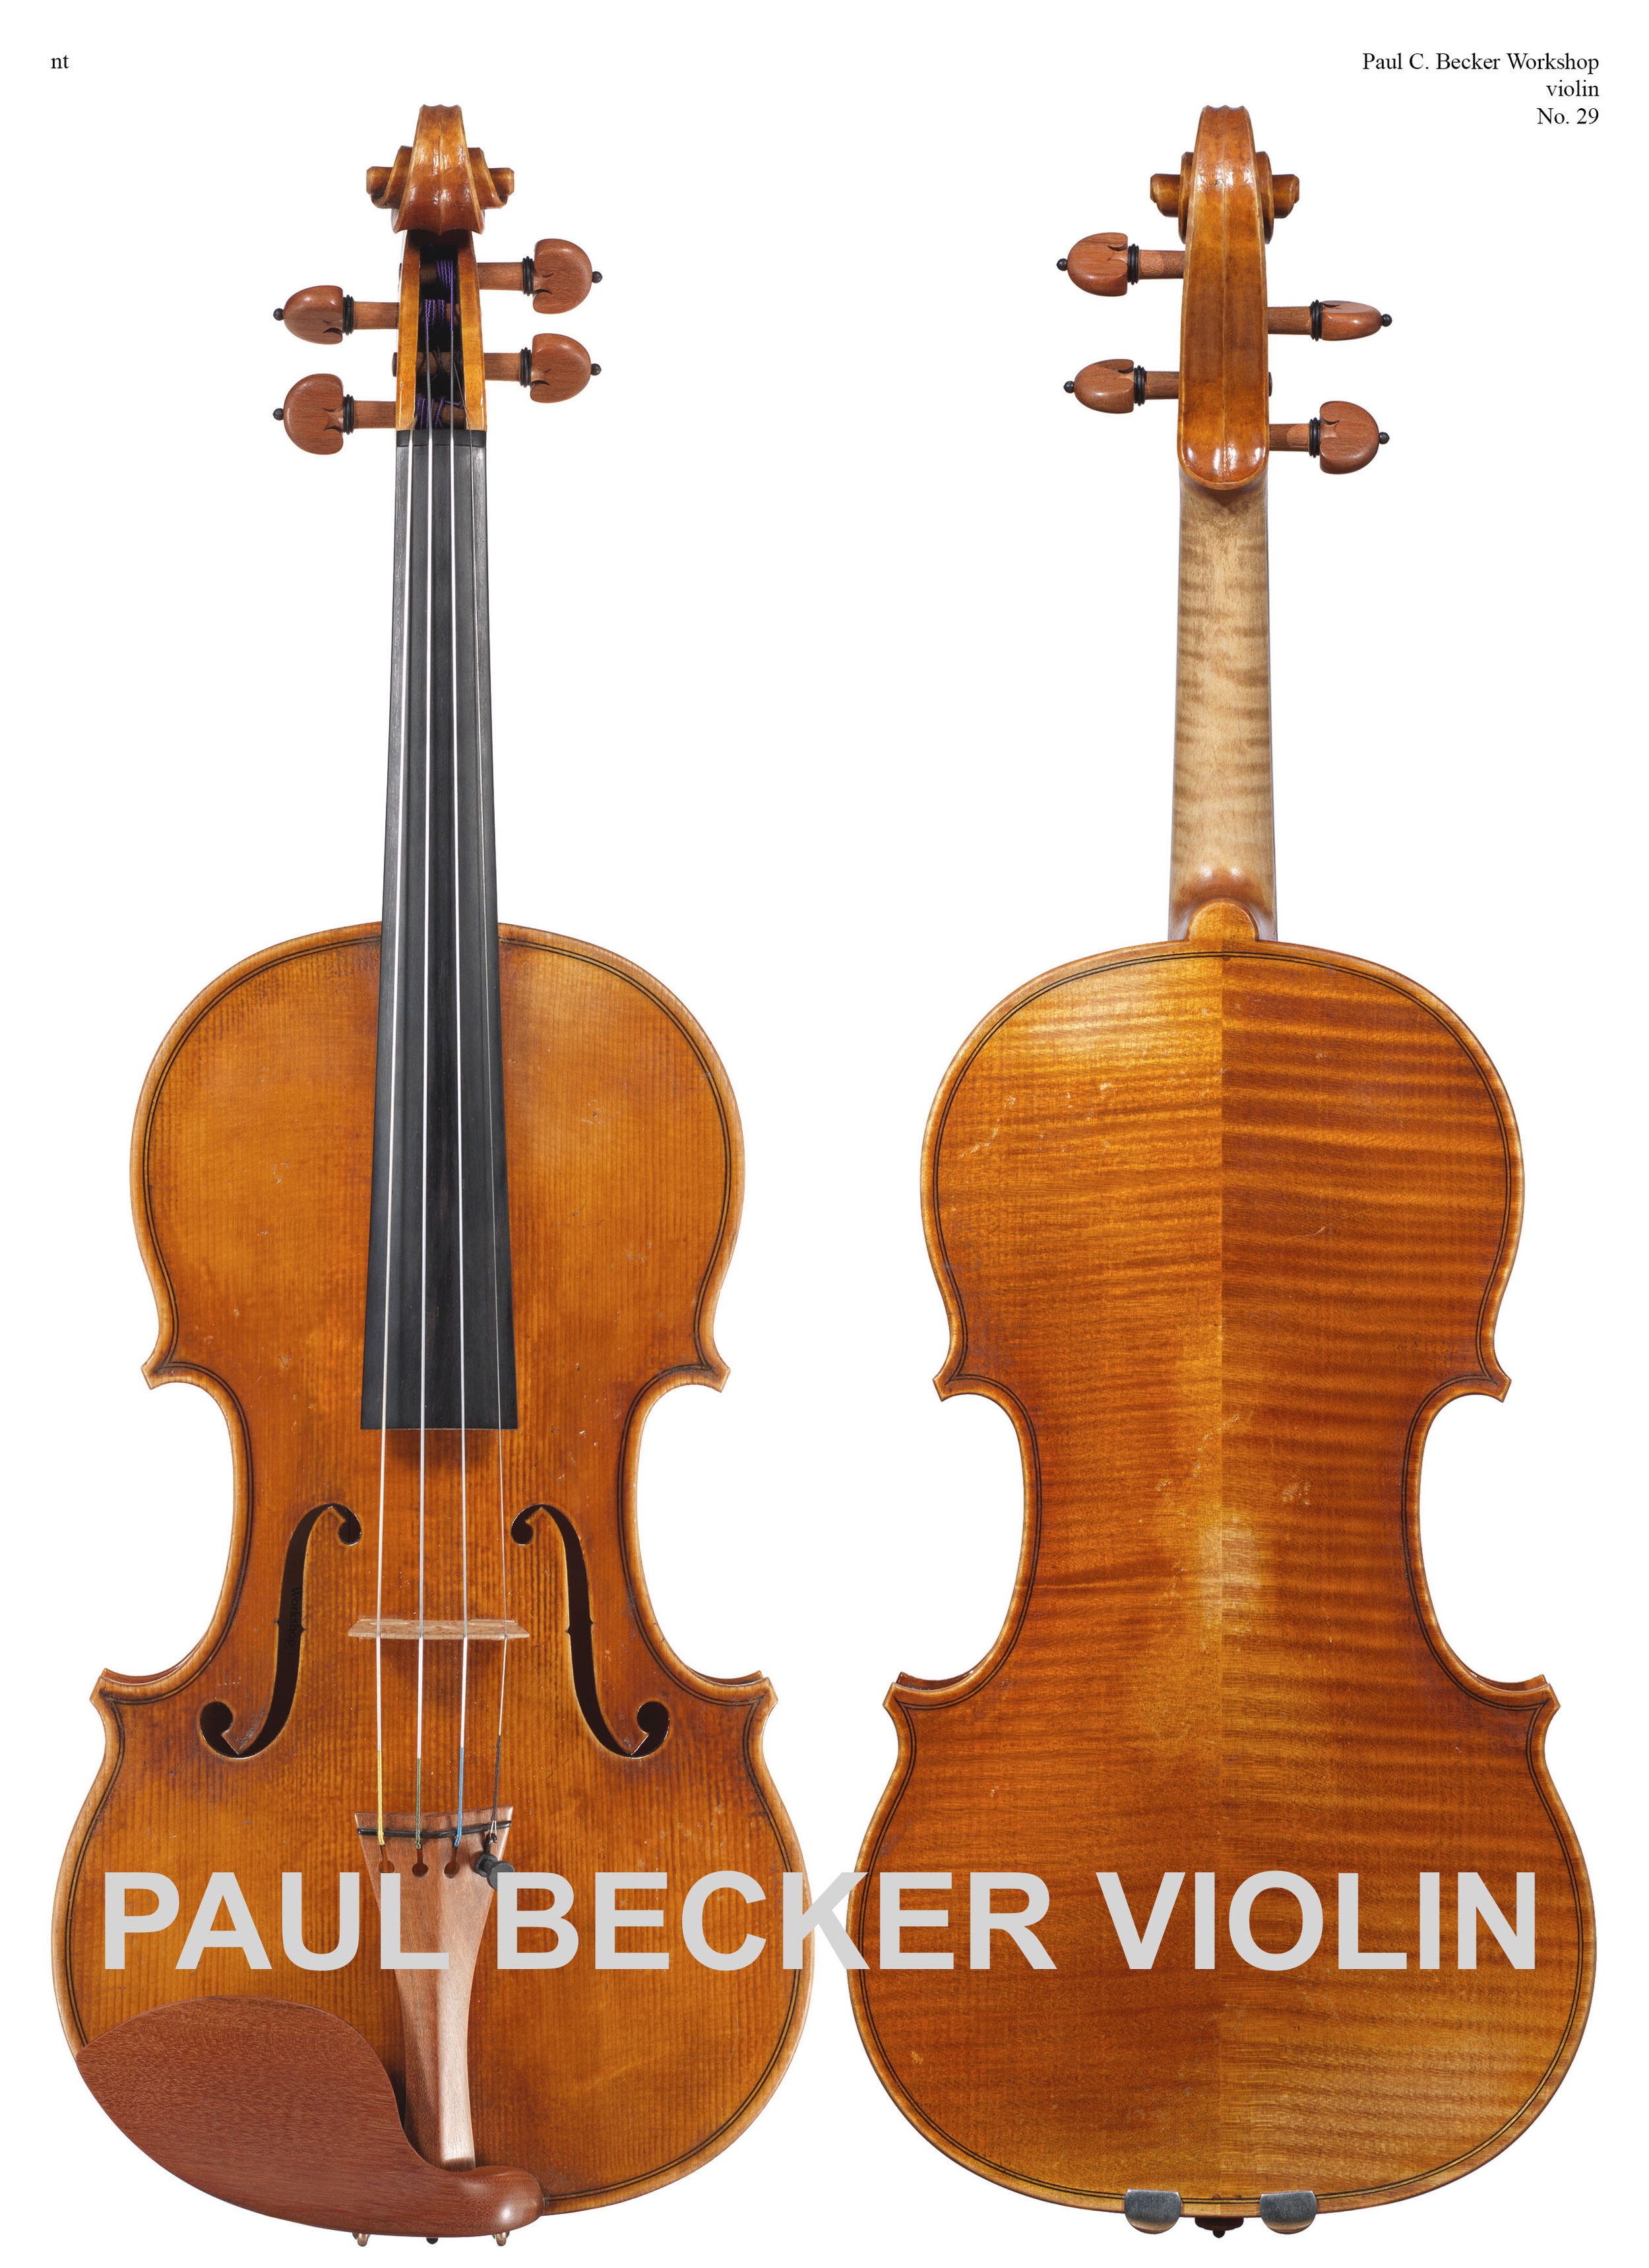 """Paul Becker Workshop No. 29. Strad model with Jeremy Koon's """"Antiqued Varnish"""" - The back in two pieces is of quarter cut maple marked by a medium curl slanted down from the center joint.Varnish is soft in texture and is of a golden-red orange color. Present Value: $15,000"""